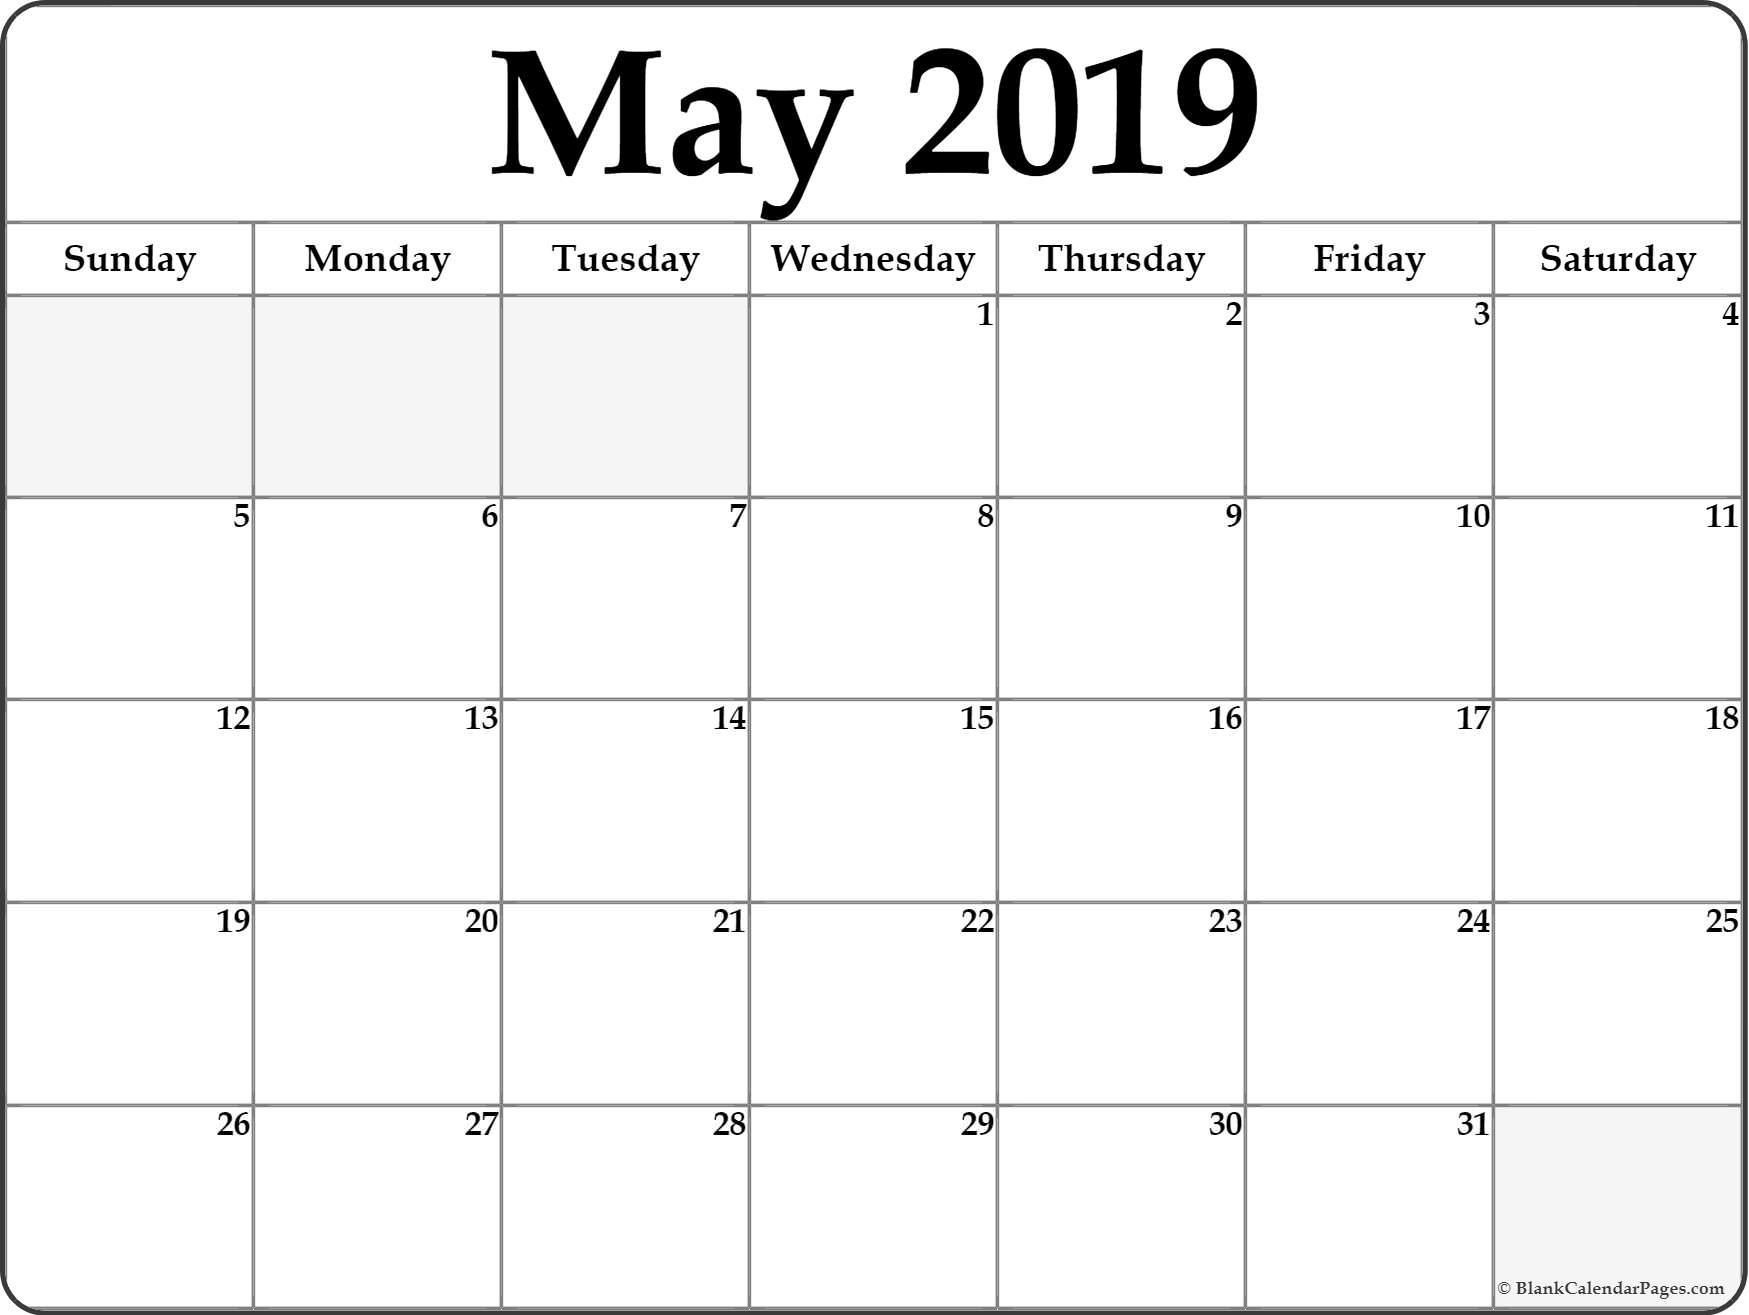 May 2019 Weekly Calendar Printable - Make A Week Wise Schedule For Weekly Calendar 2019 Xls